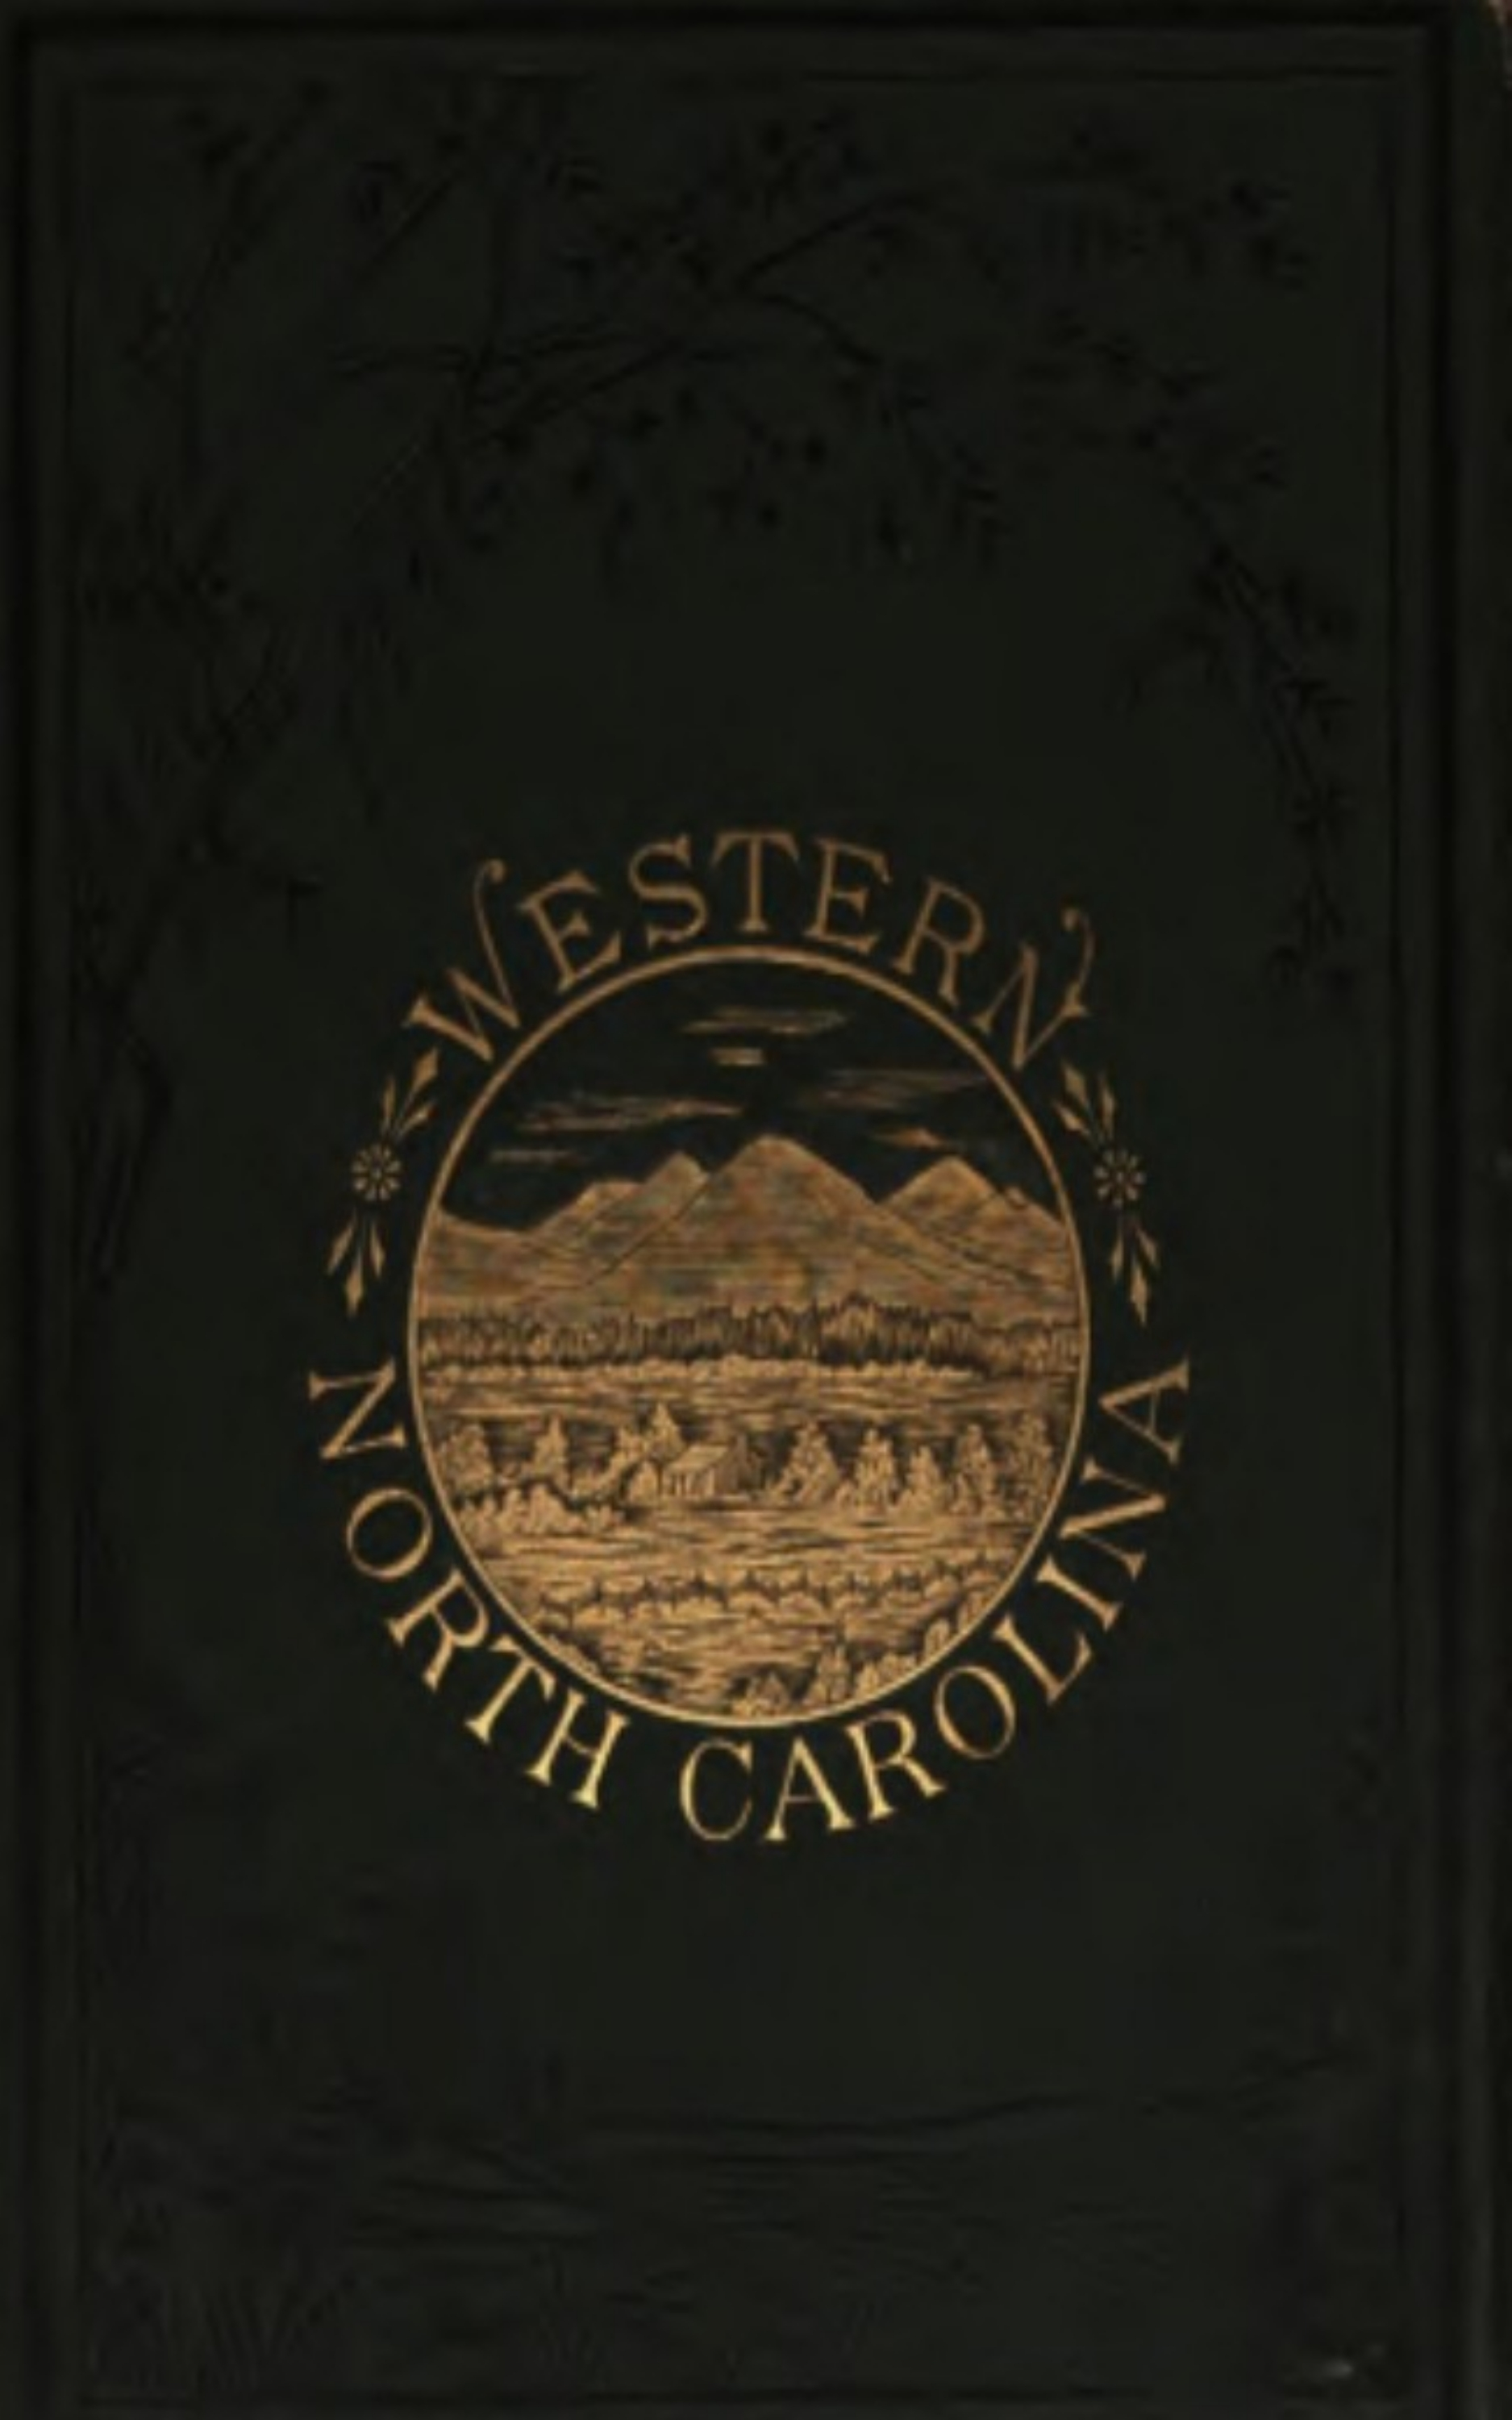 Ben S. Grosscup Wilbur G. Zeigler Western North Carolina - The Heart of the Alleghanies north carolina adjutant general s dept annual report of the adjutant general of the state of north carolina for the year serial 1916